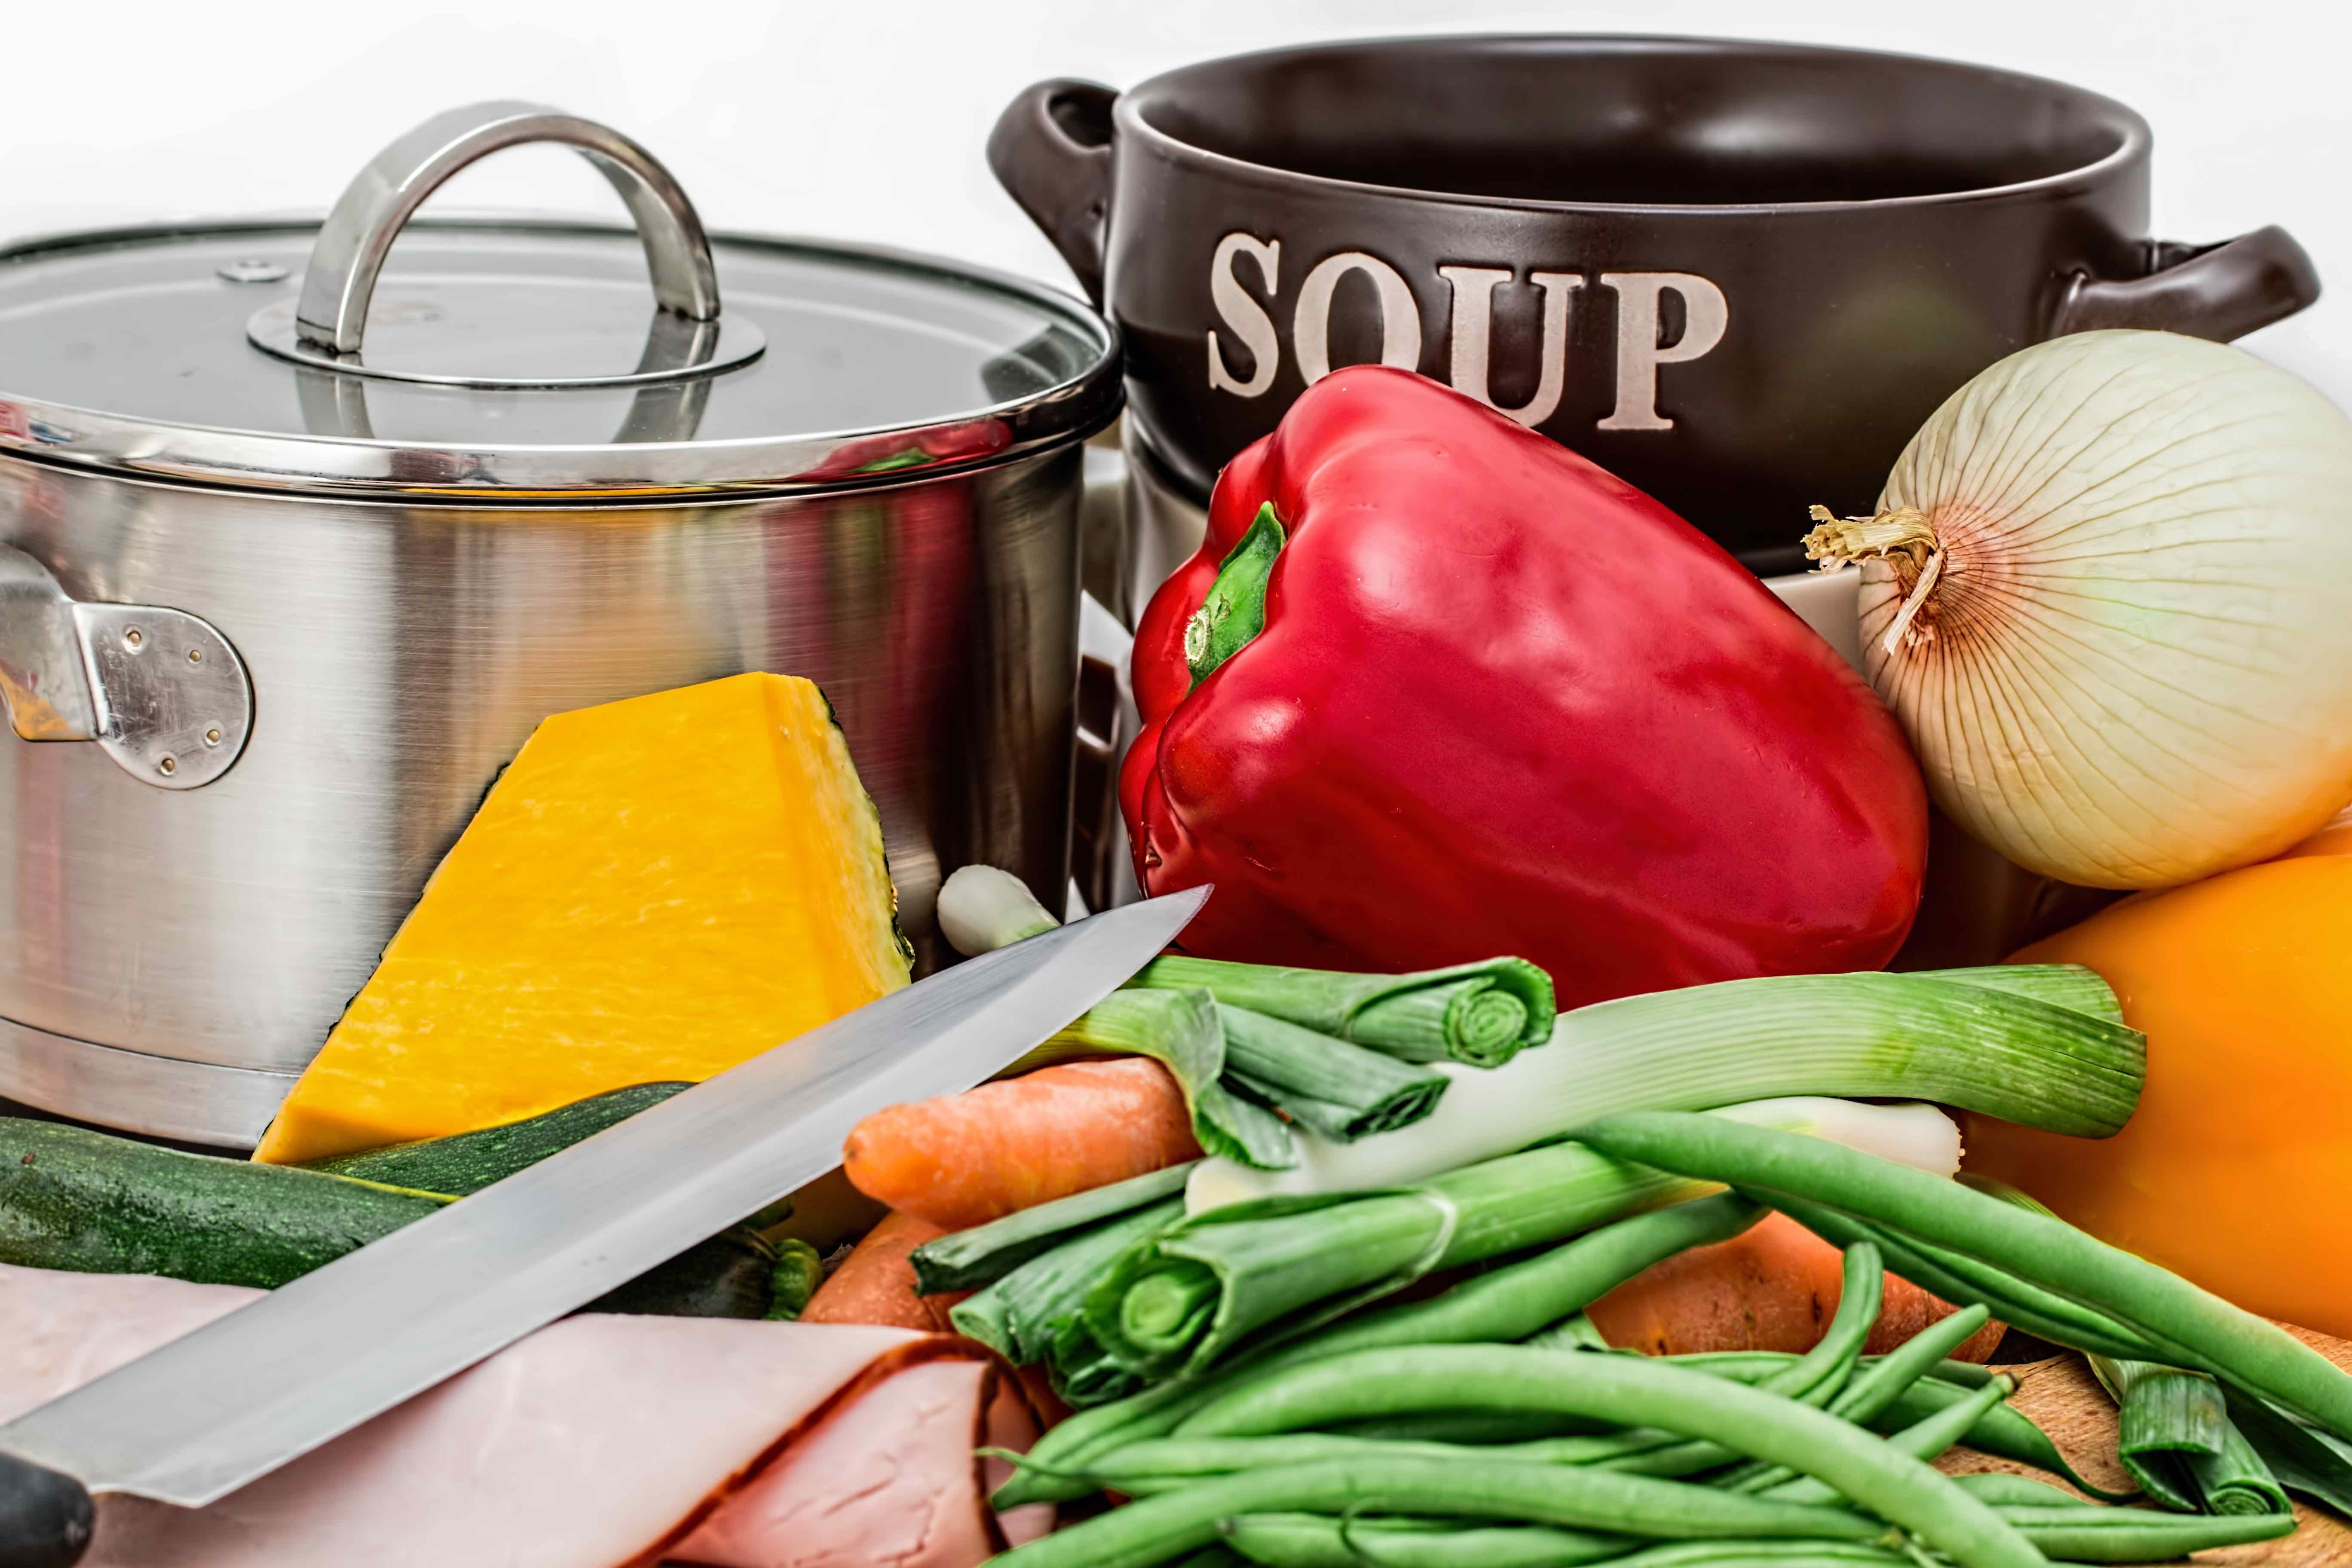 soup-vegetables-pot-cooking